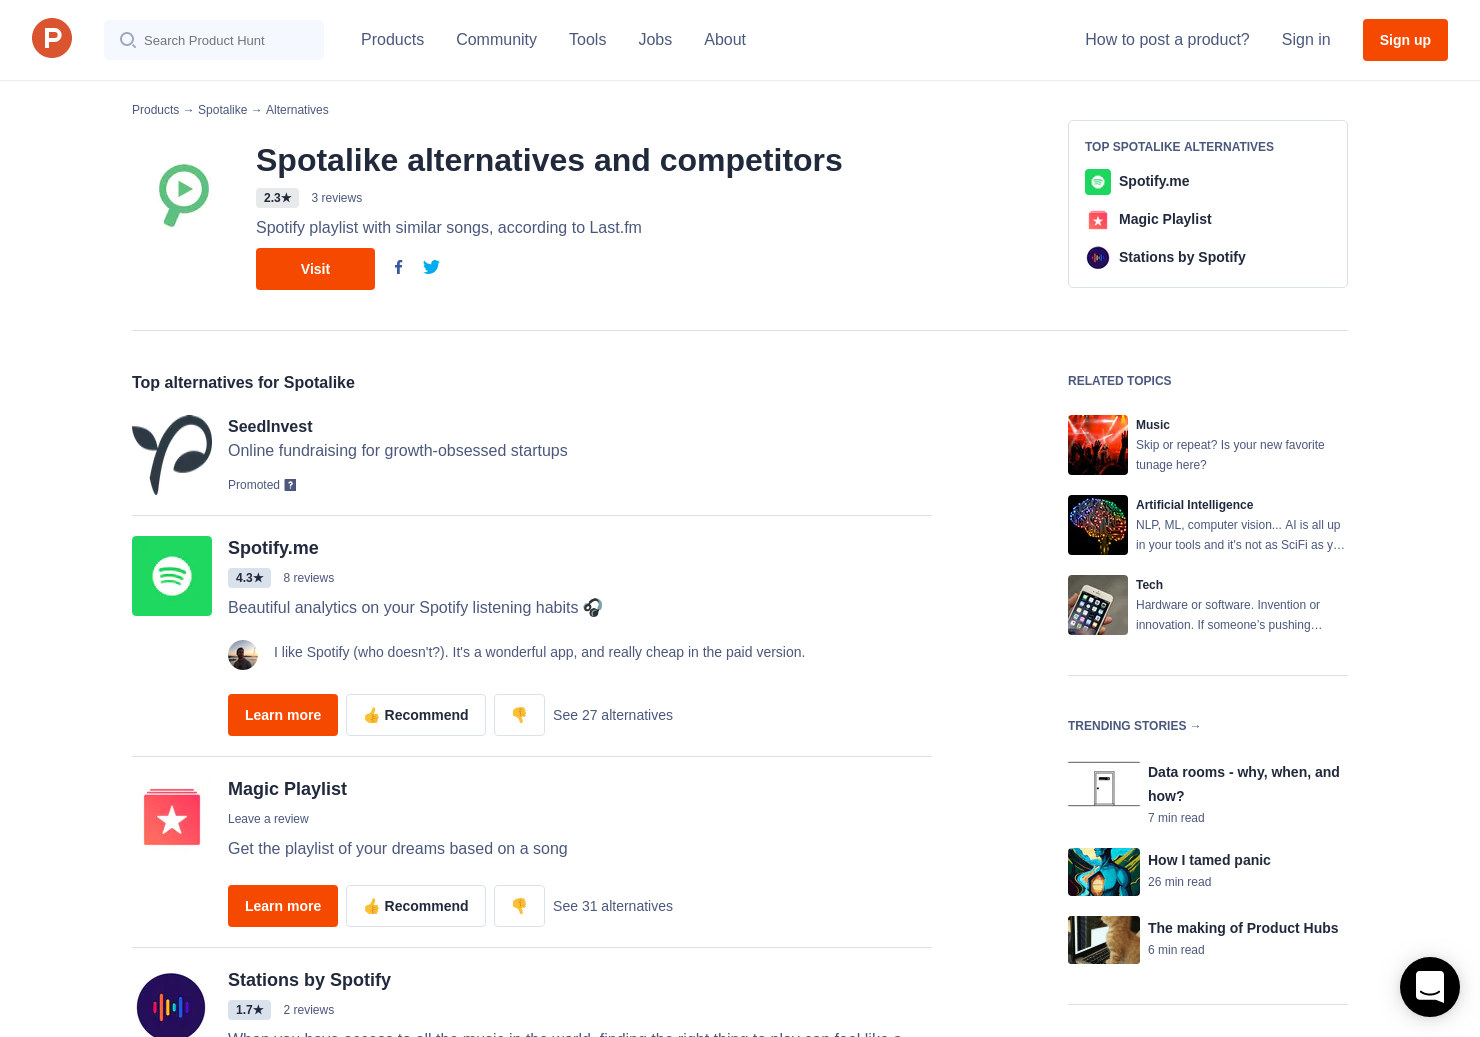 7 Alternatives to Spotalike | Product Hunt